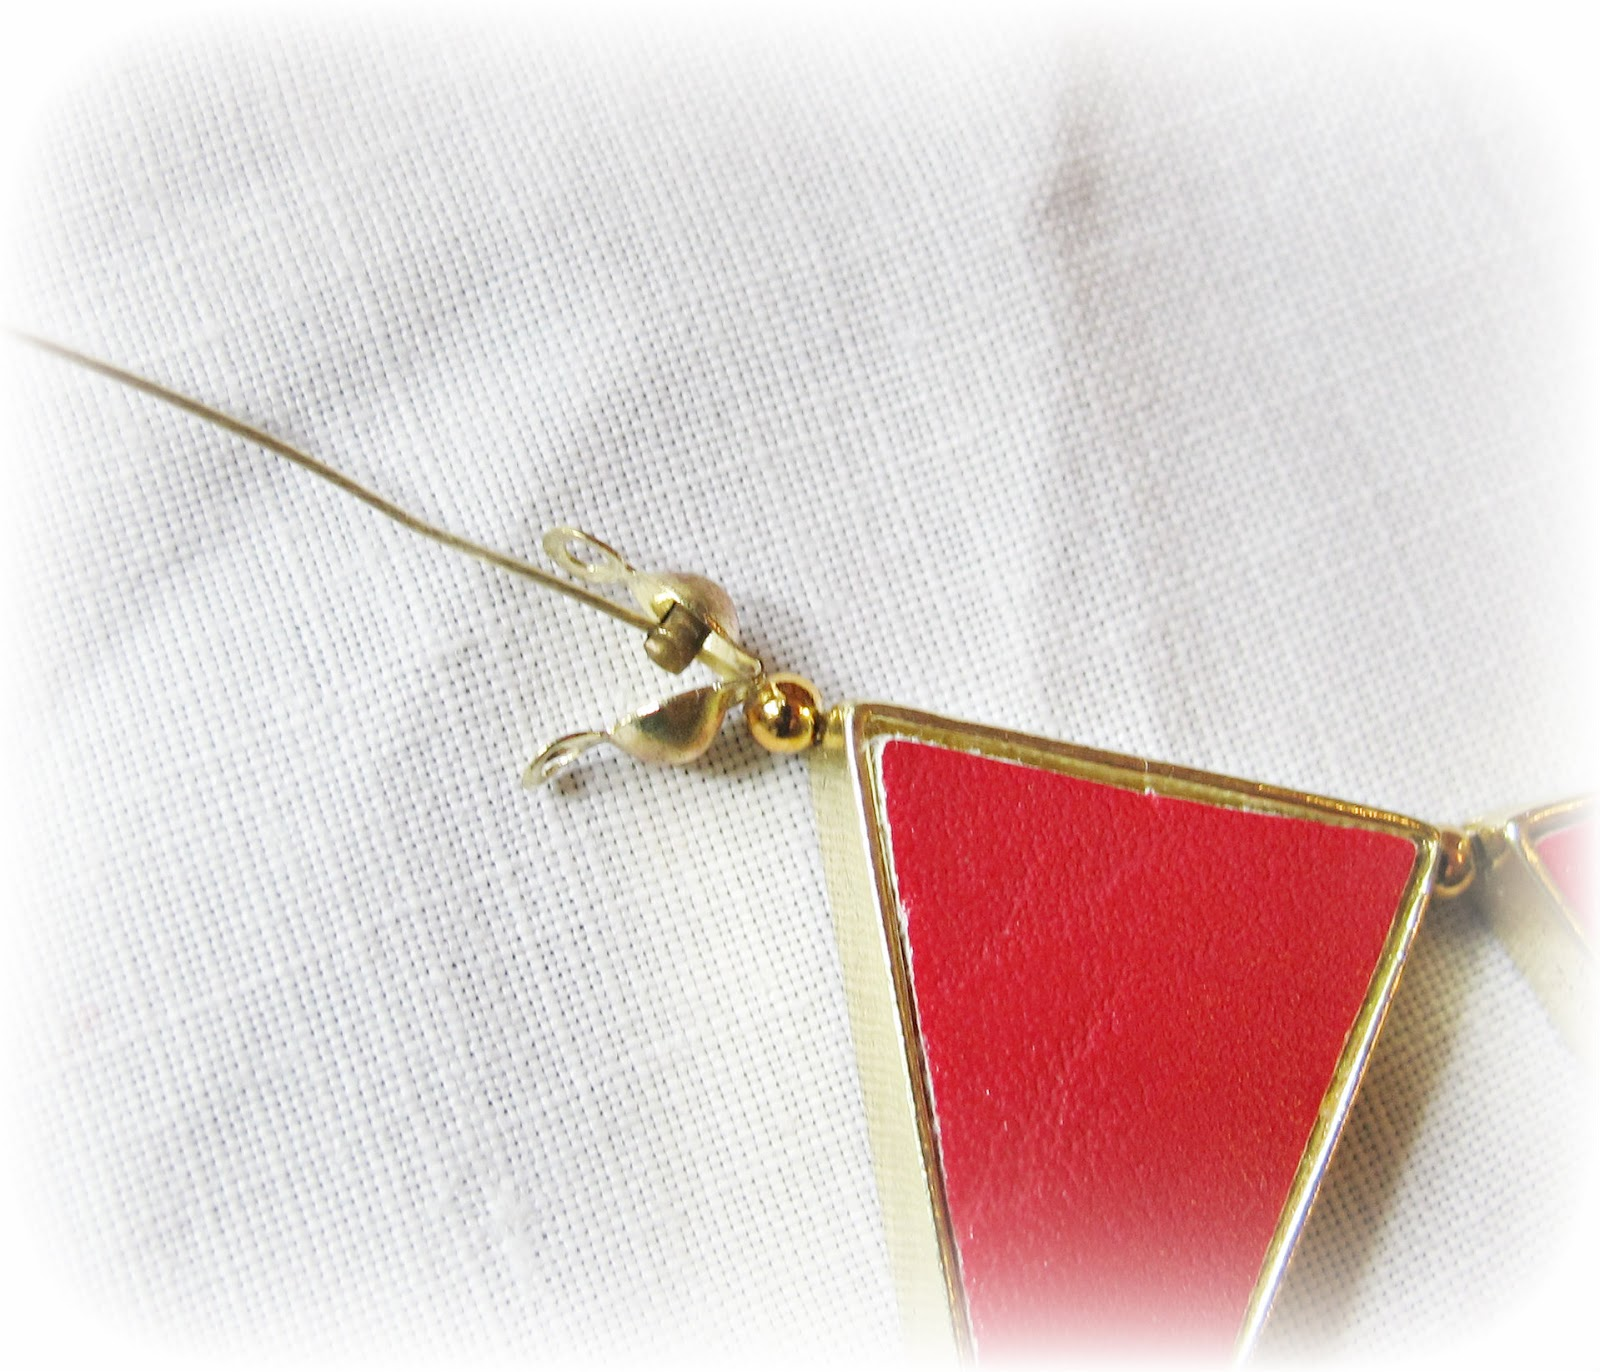 image tutorial diy bunting necklace refashion attach calotte and crimps